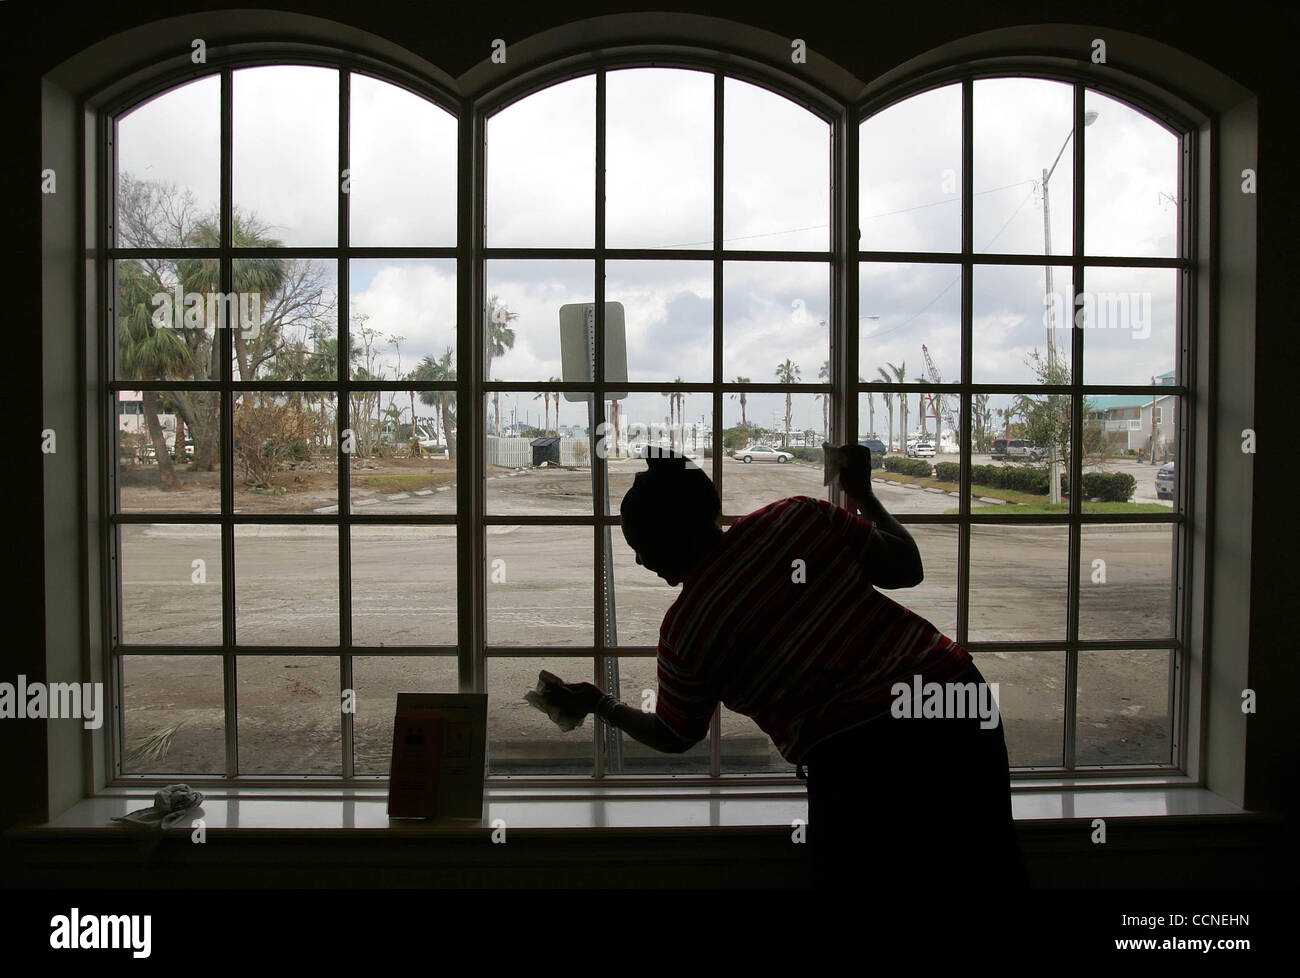 092904 - PT. ST. LUCIE, FL -interlibrary loan service employee Mary Jane Neal, cleans windows from hurricane Jeanne - Stock Image